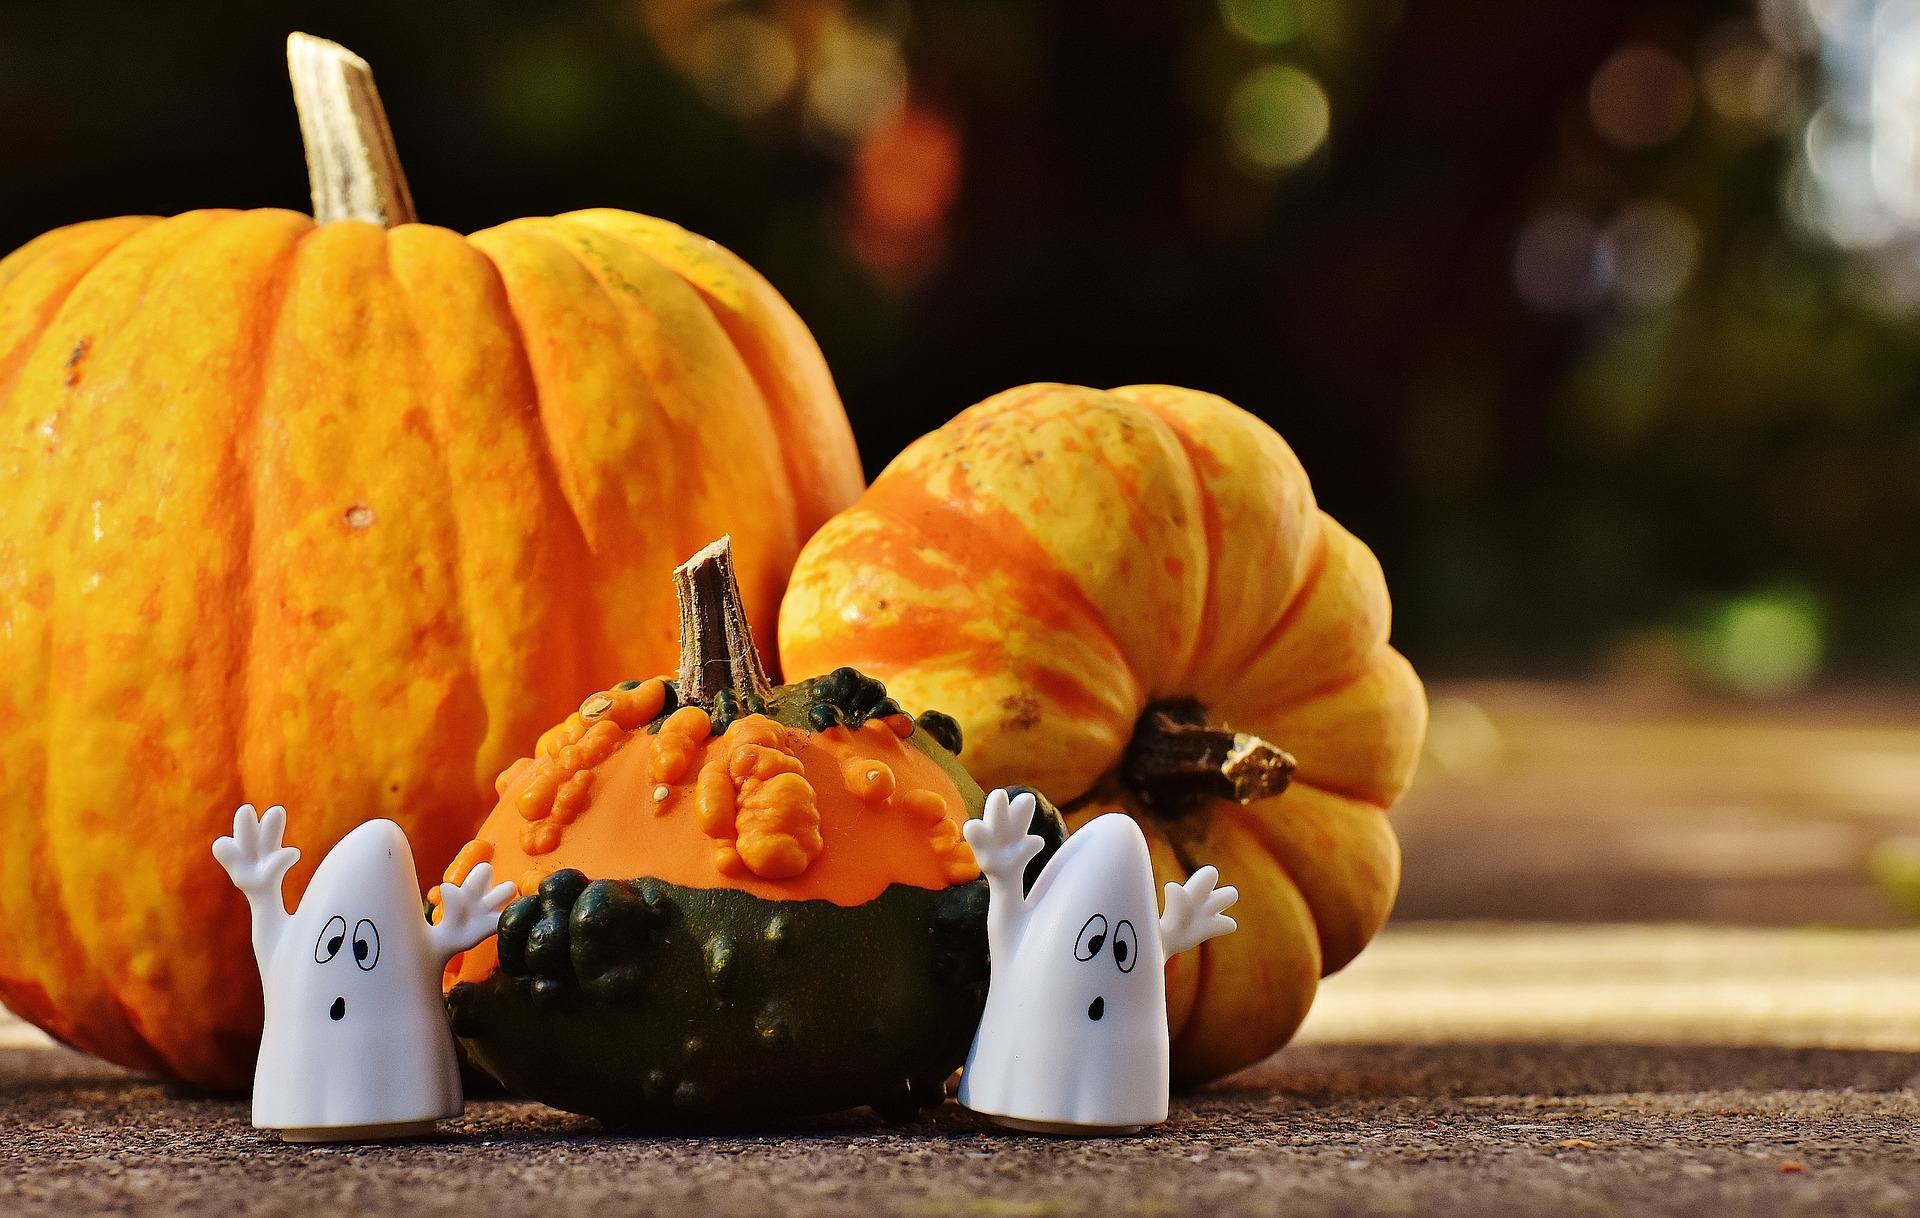 Picture of toy ghosts standing next to pumpkins.